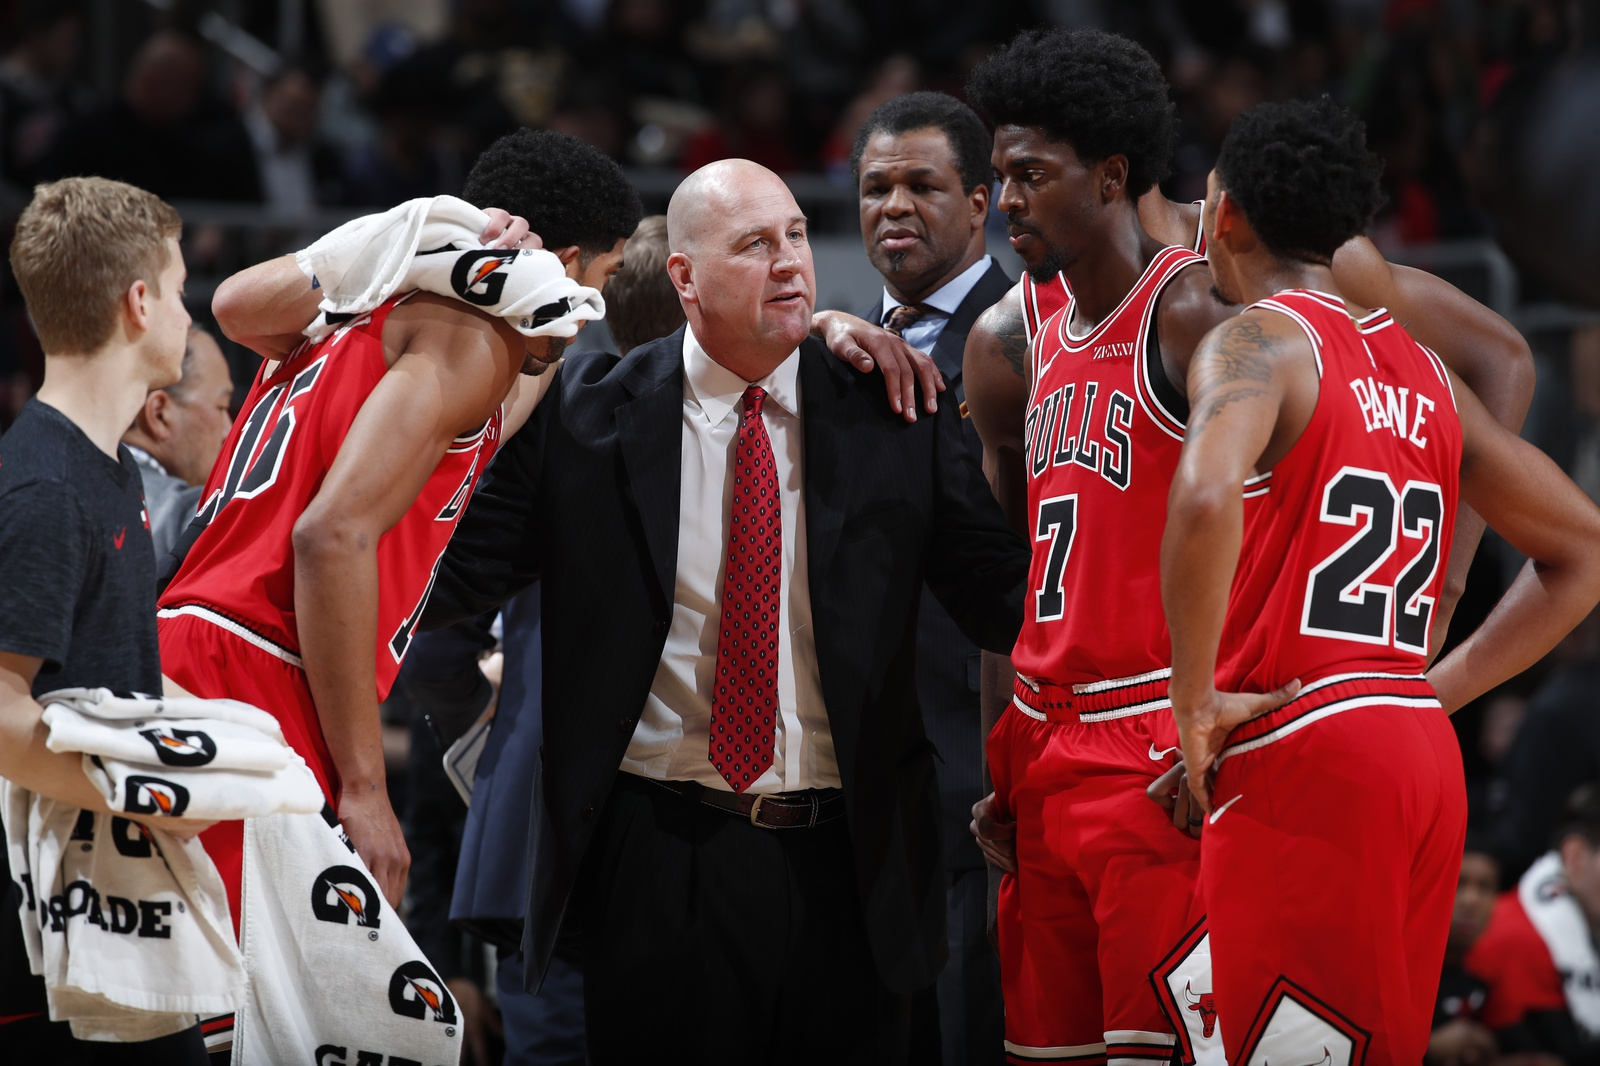 Jim Boylen huddles with his team during a time out against the Golden State Warriors on October 29, 2018 at United Center in Chicago, Illinois.